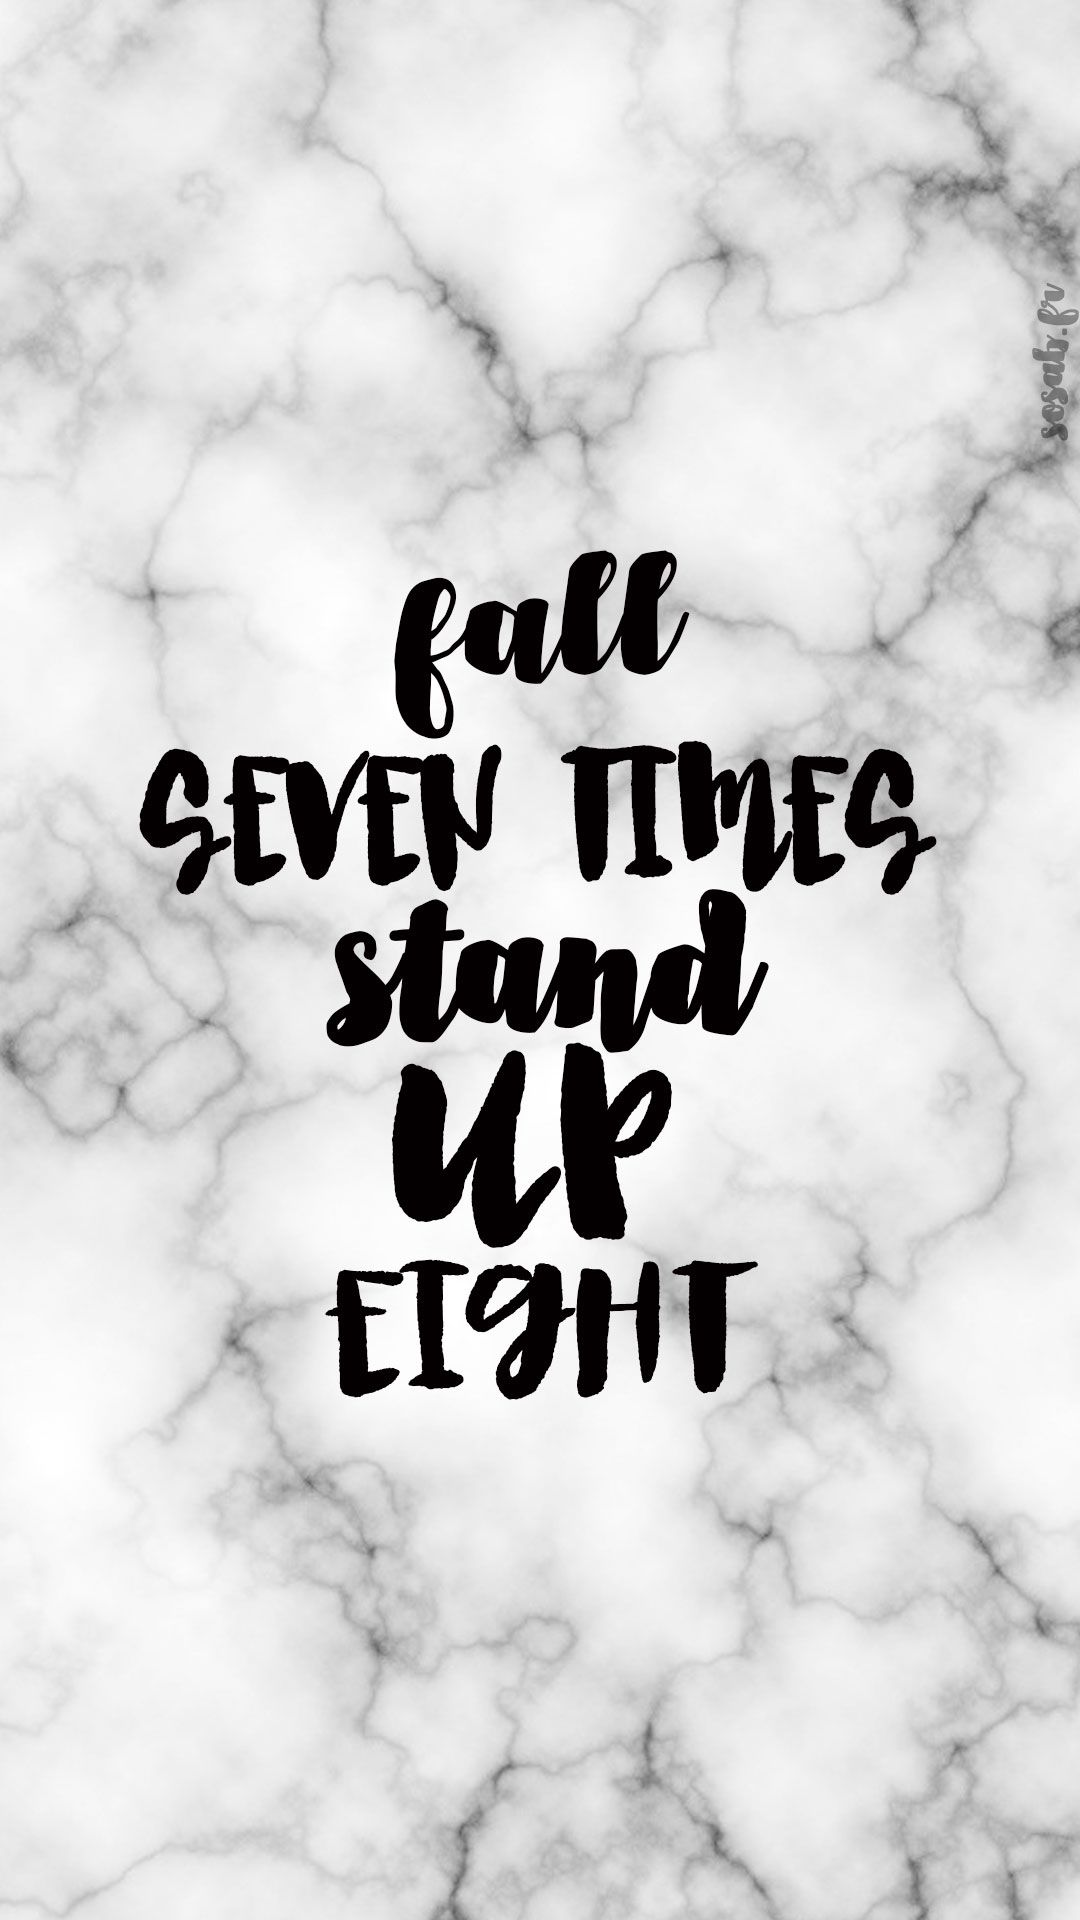 Fall seven times stand up eight fond d écran Pinterest